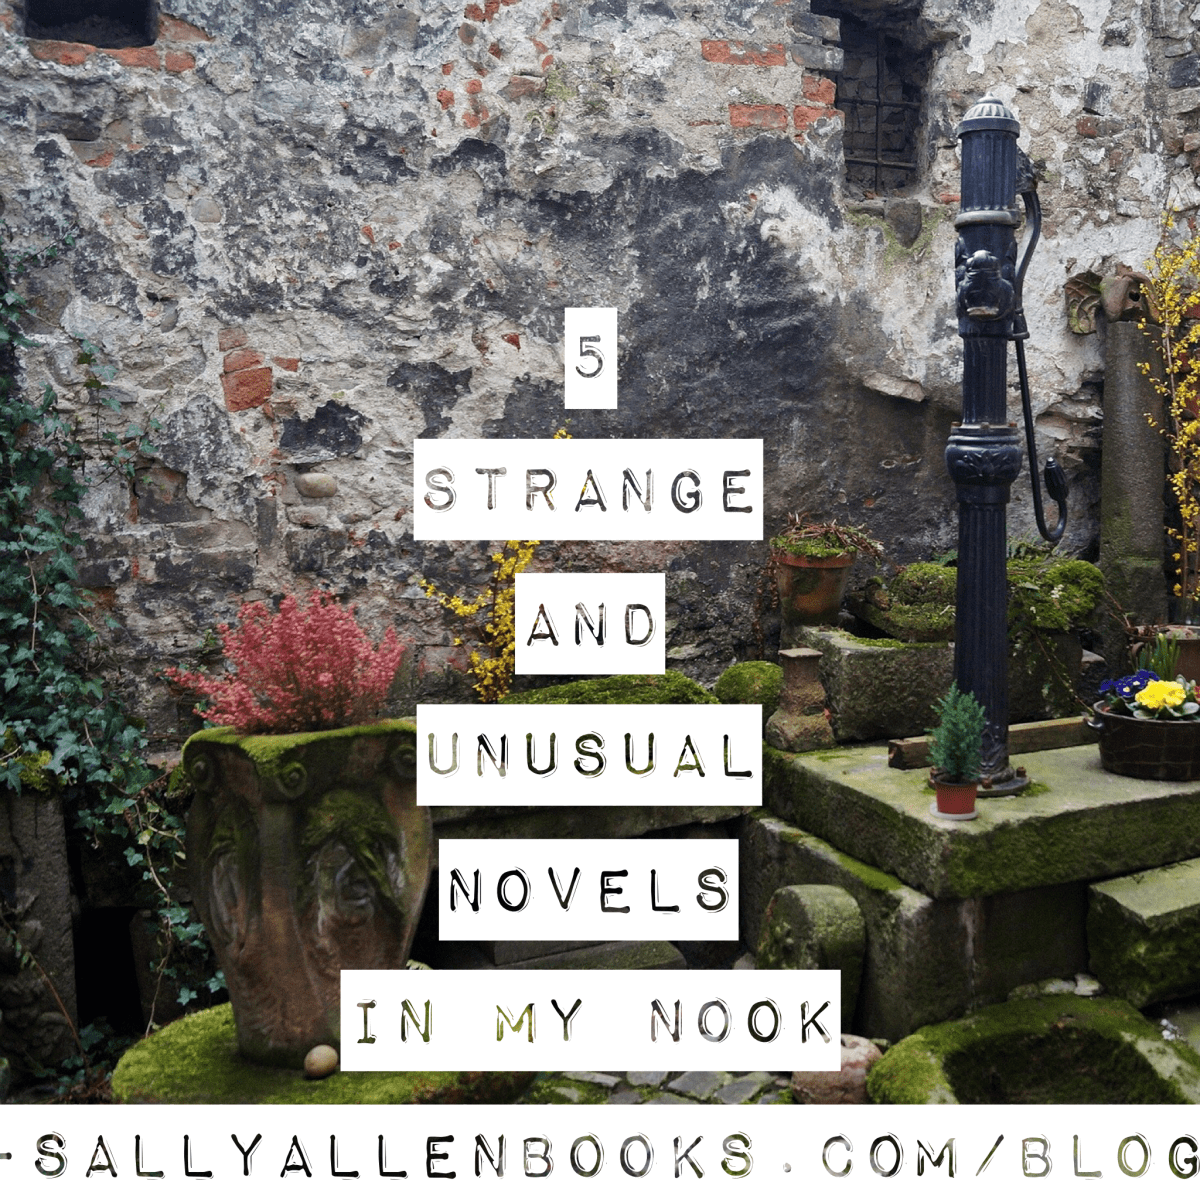 5 strange and unusual novels in my Nook